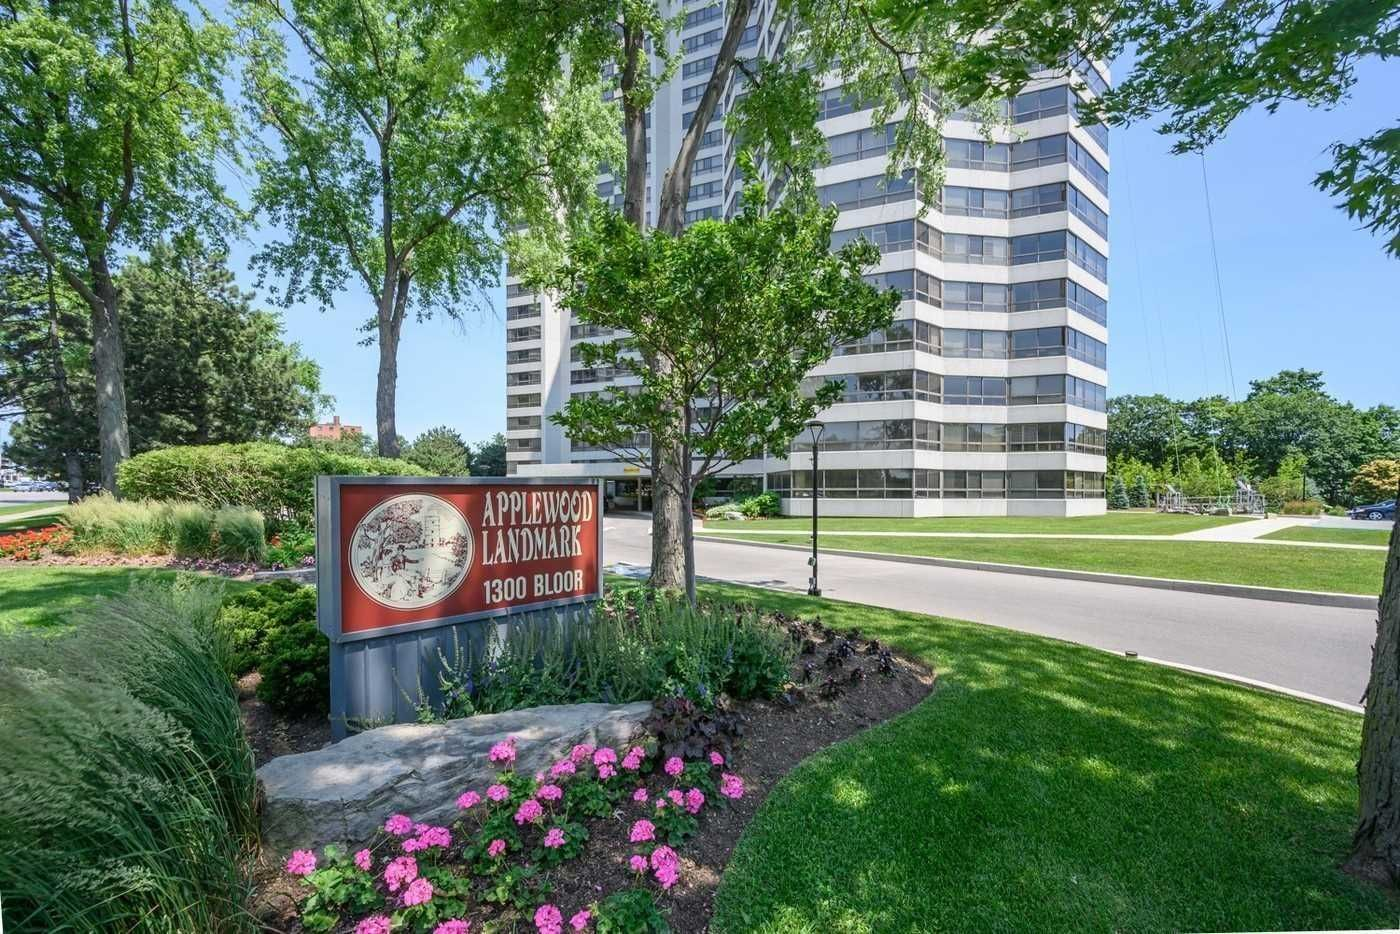 1300 Bloor St, unit 2408 for sale in Toronto - image #1